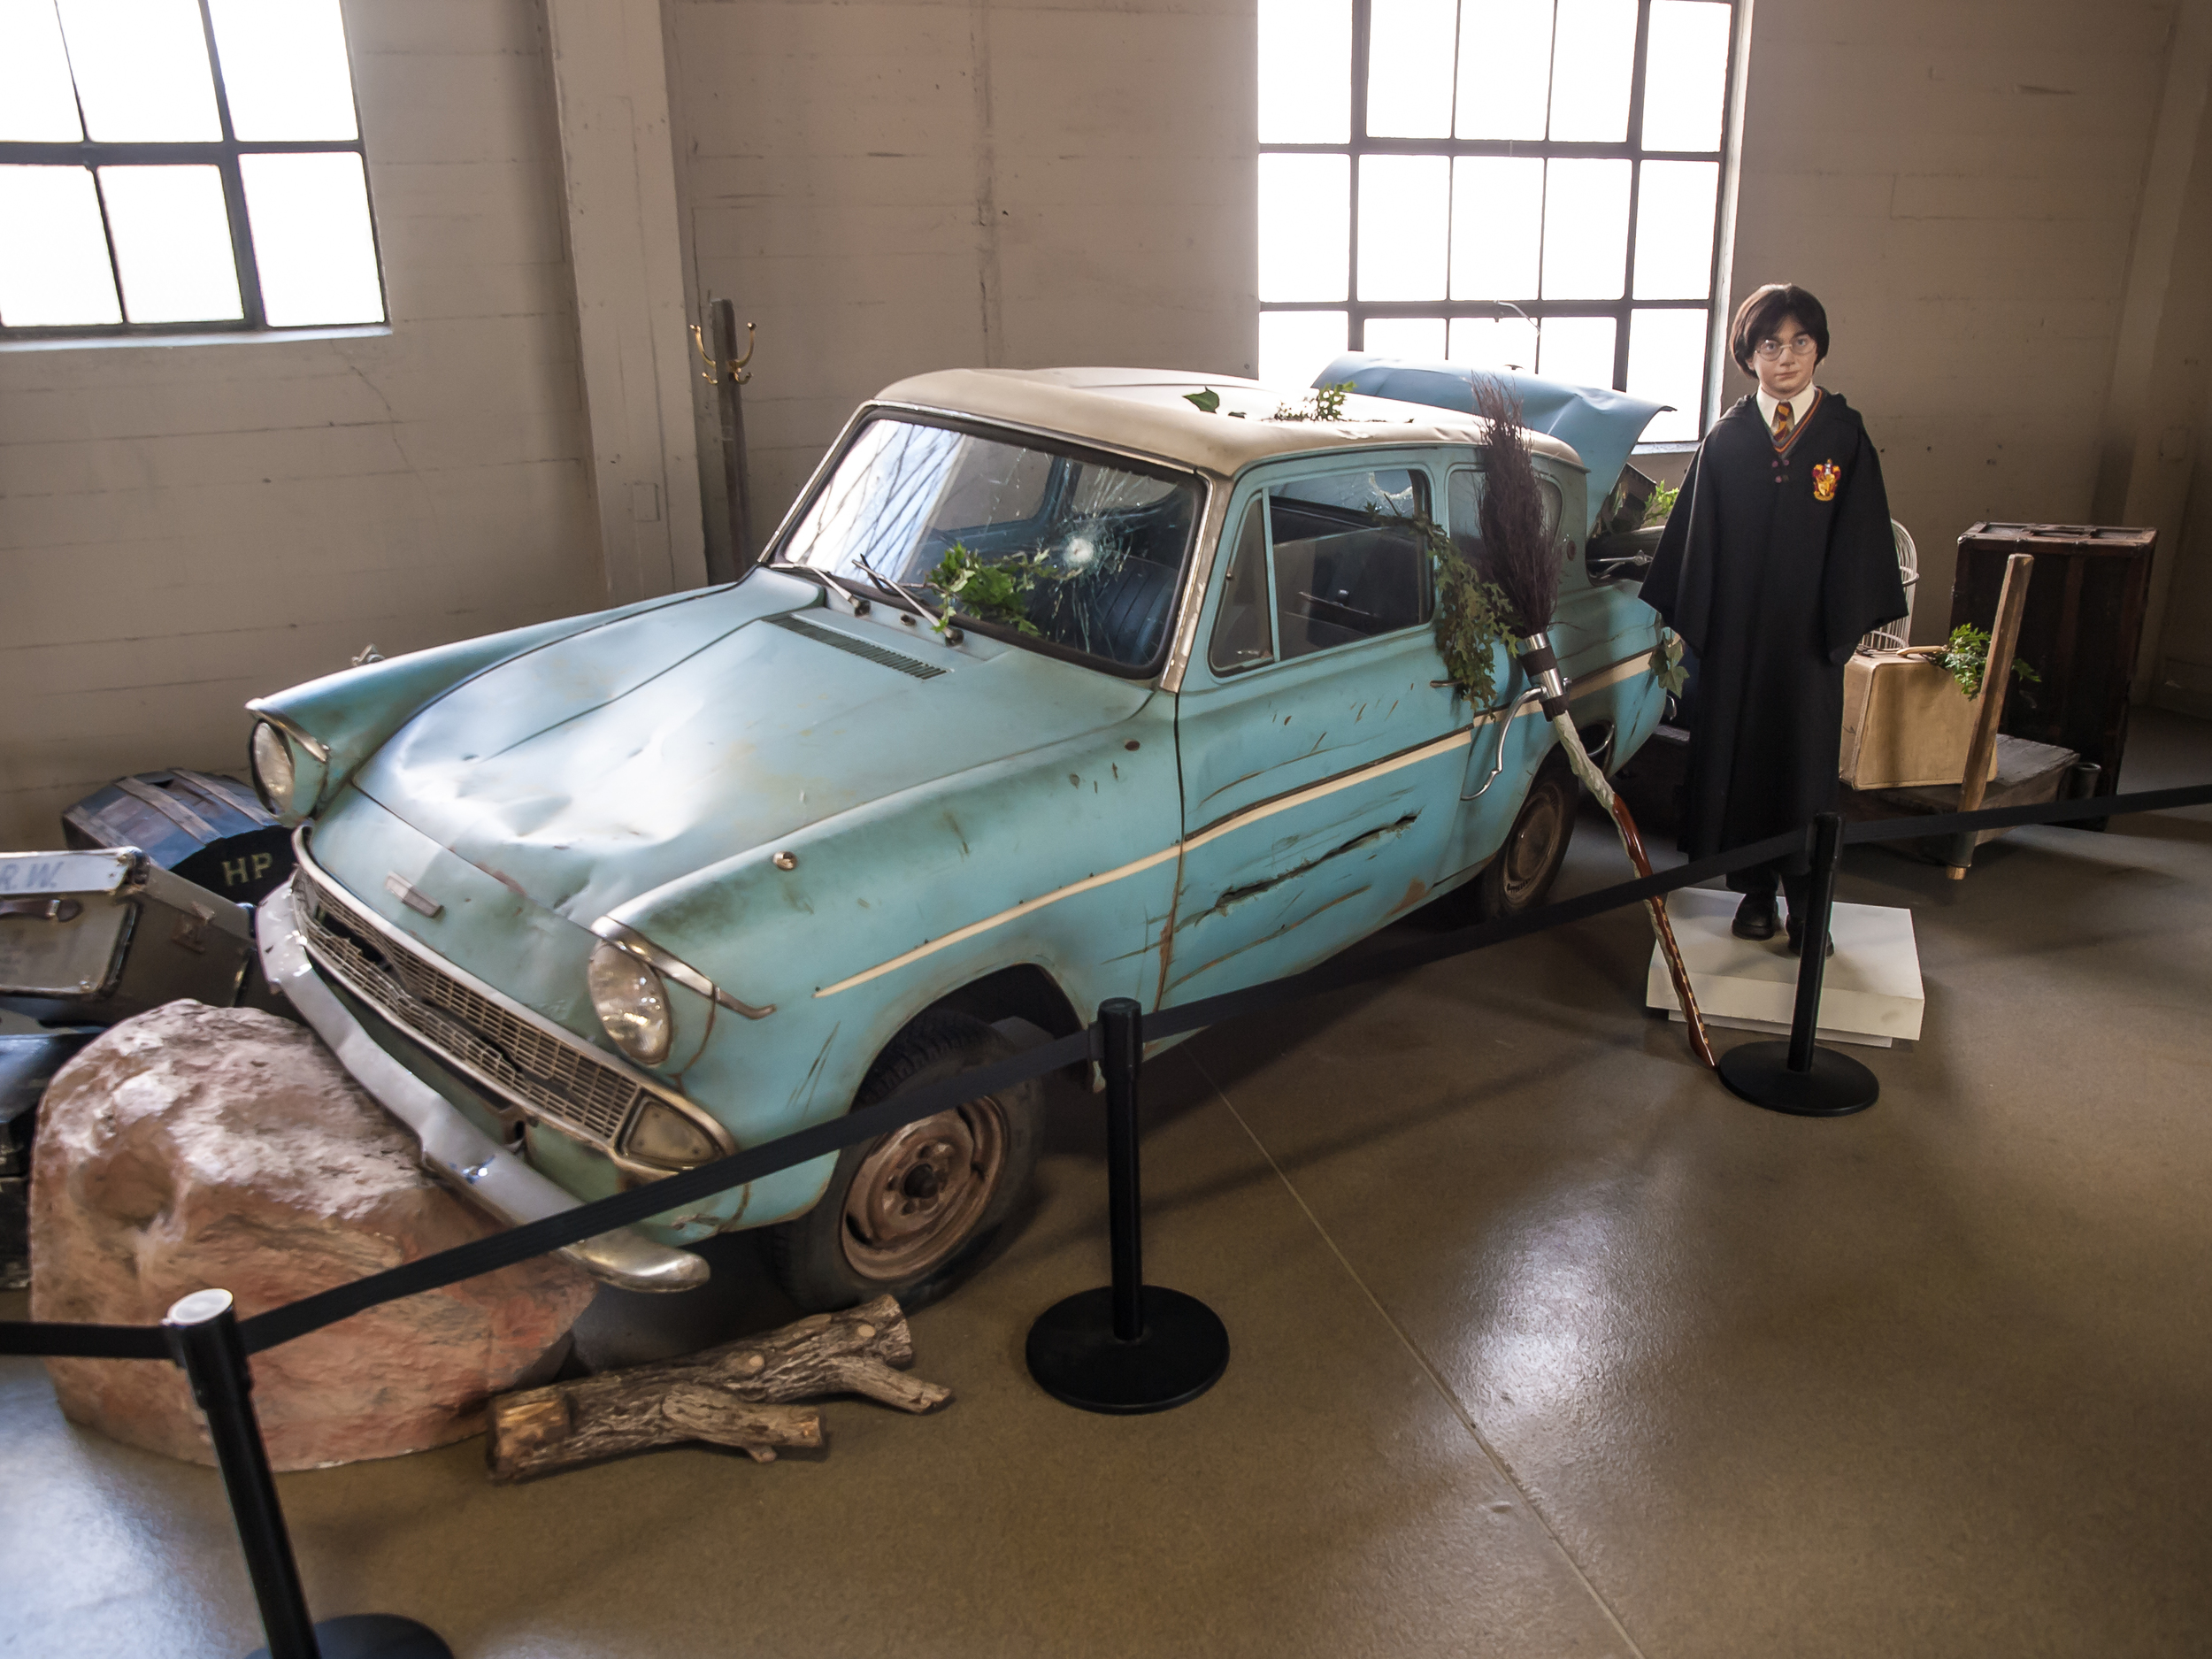 Only Harry Potter gets a flying car for now